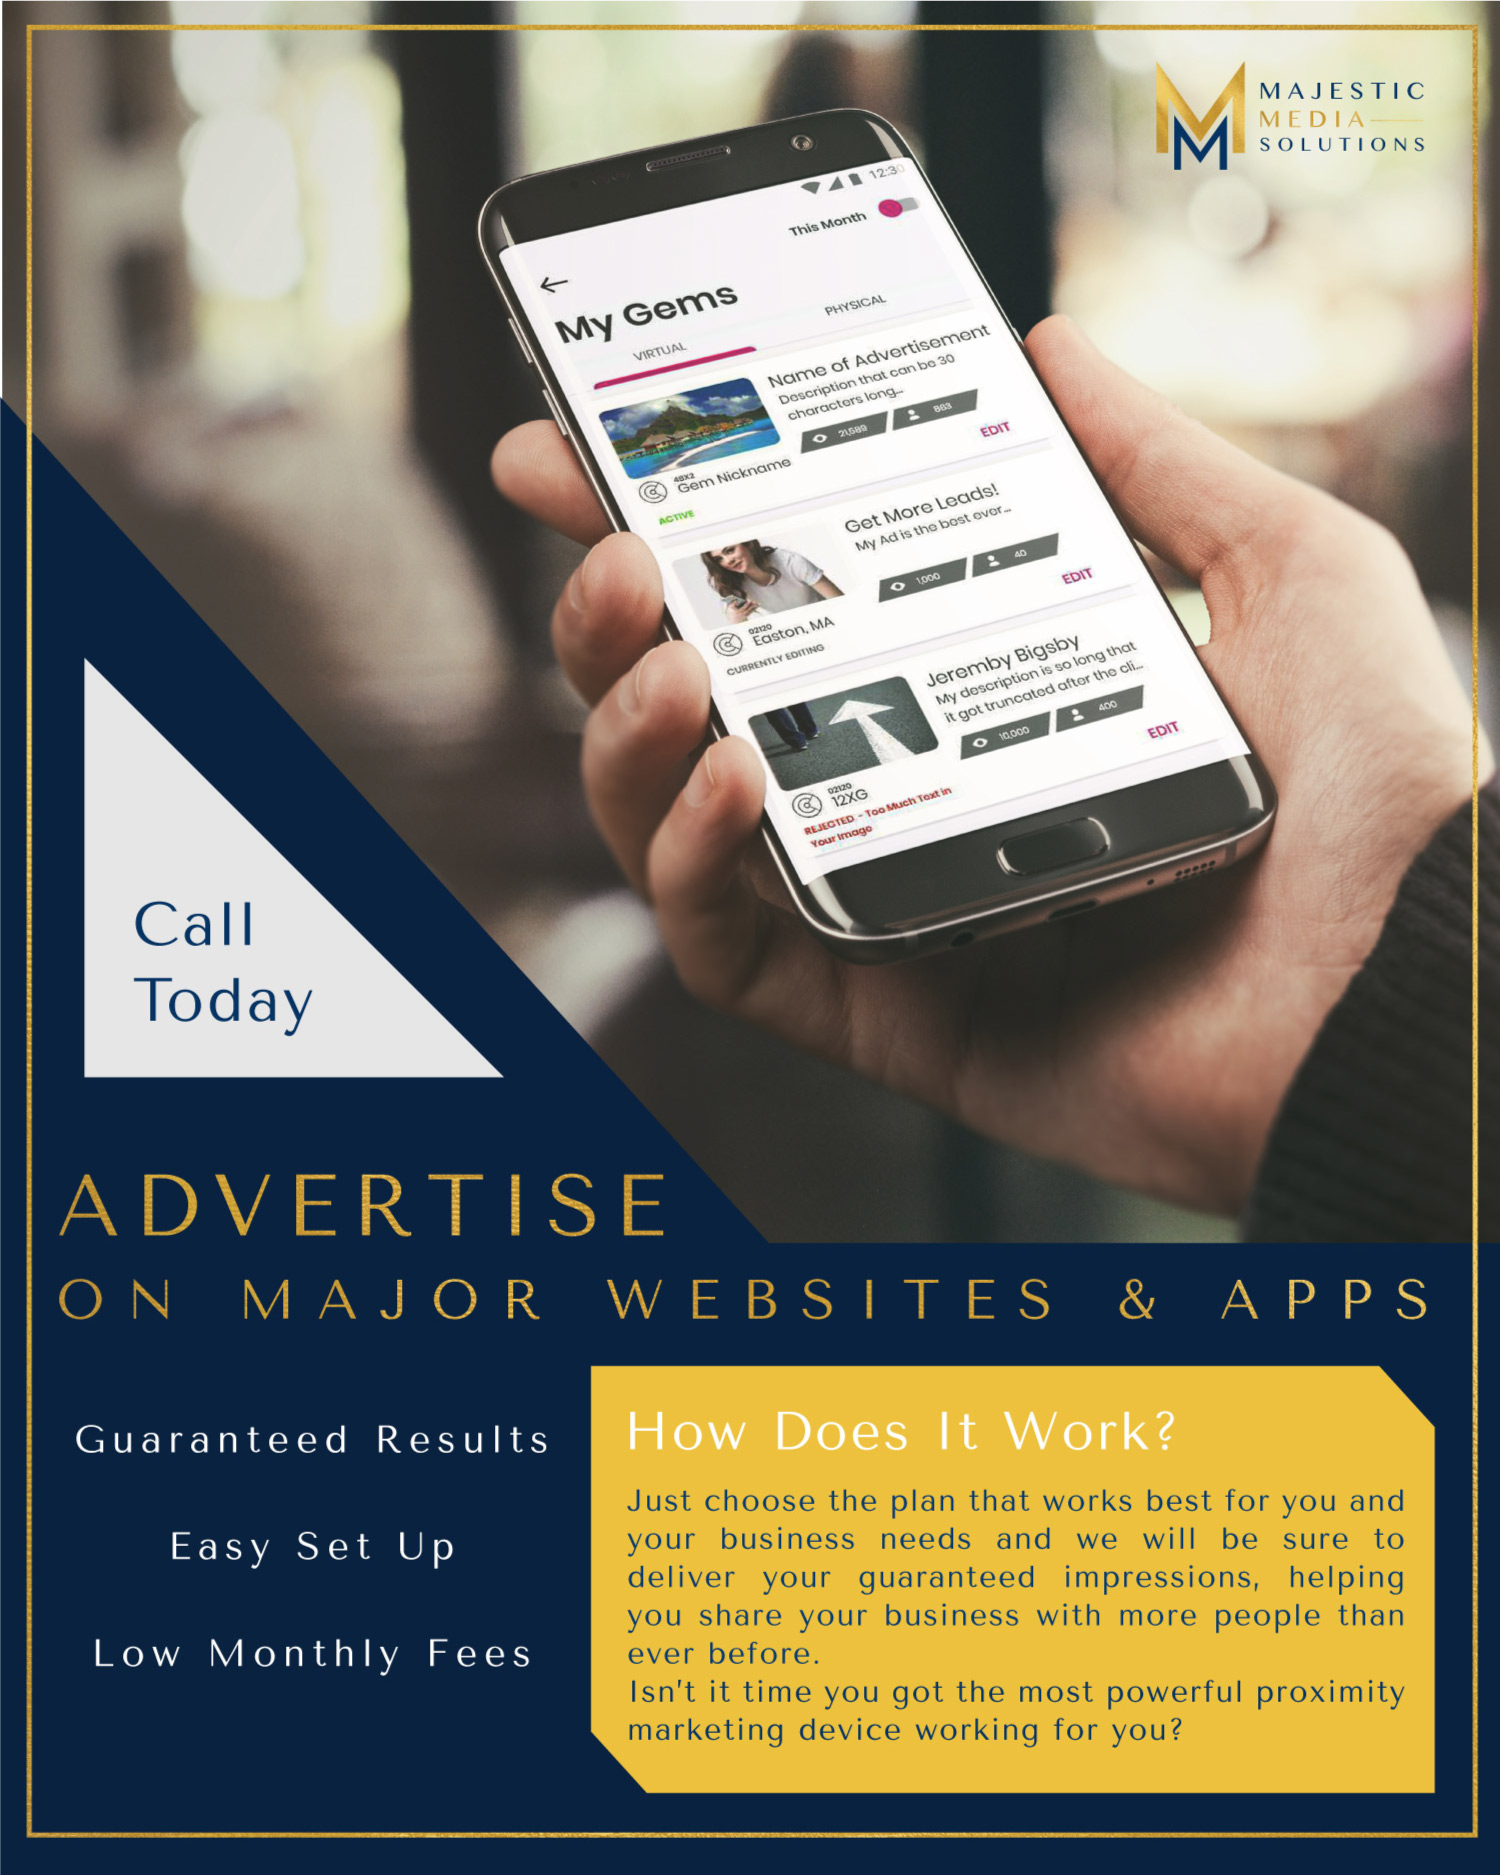 Call-Today-Advertise-on-major-websites-and-apps.jpg